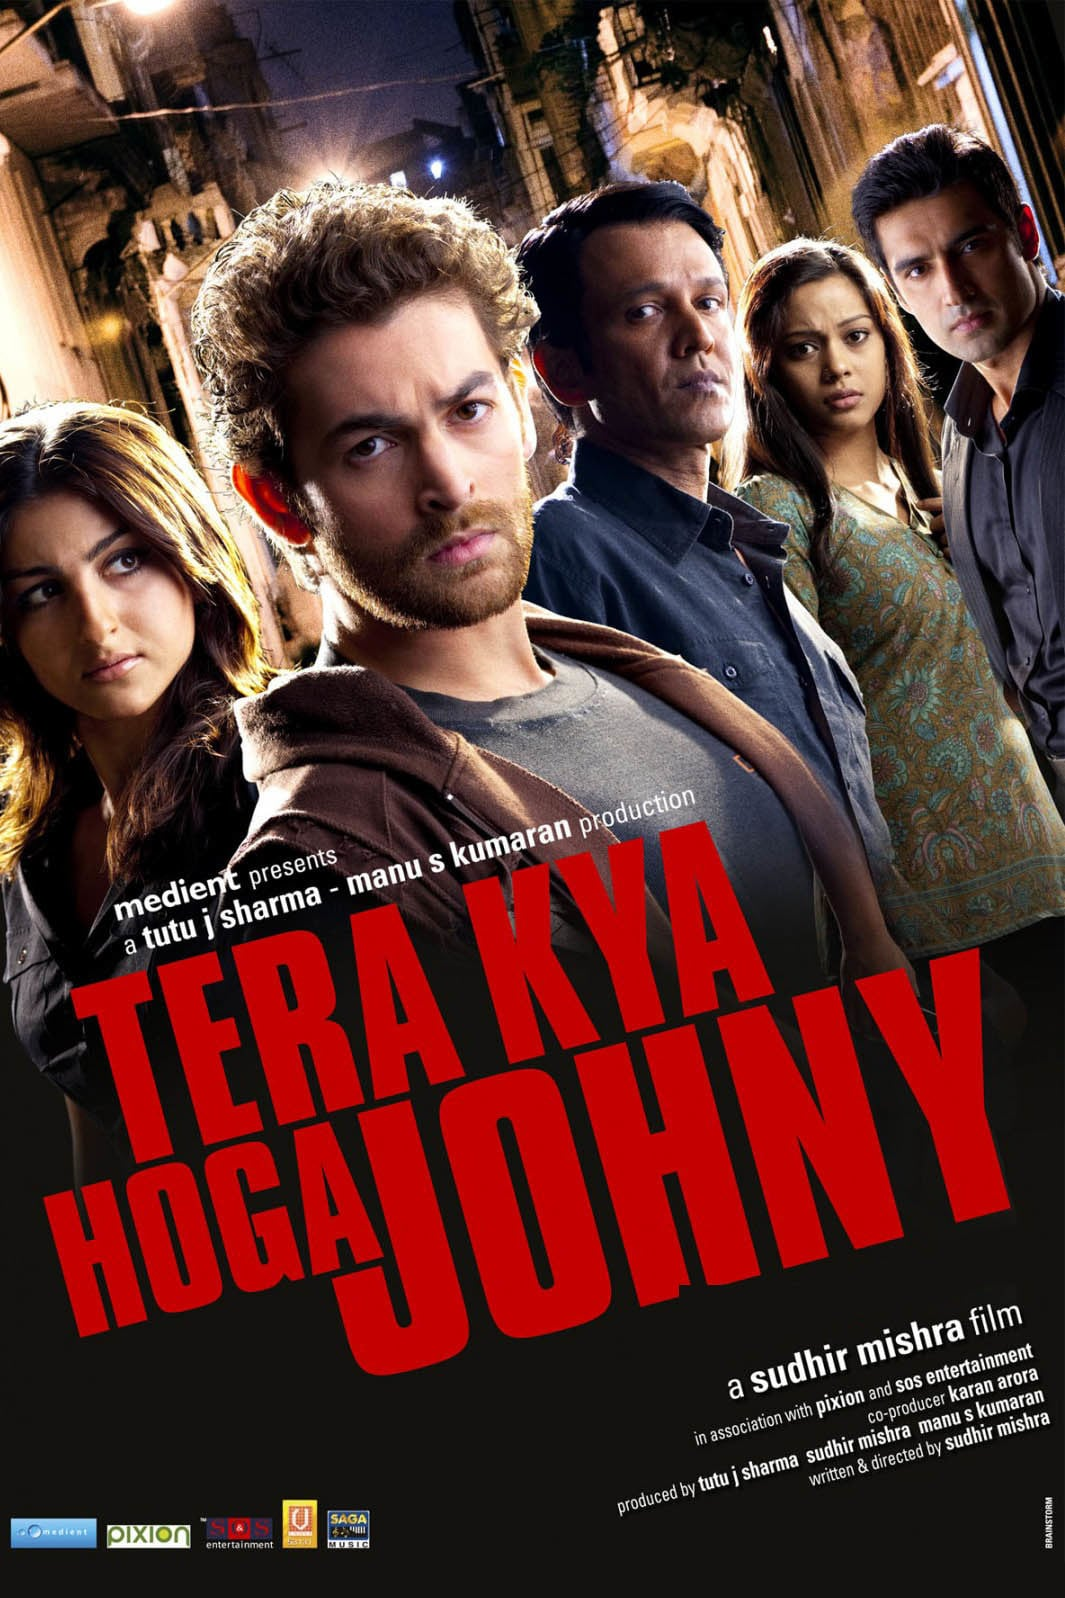 Tera Kya Hoga Johnny Movie Streaming Online